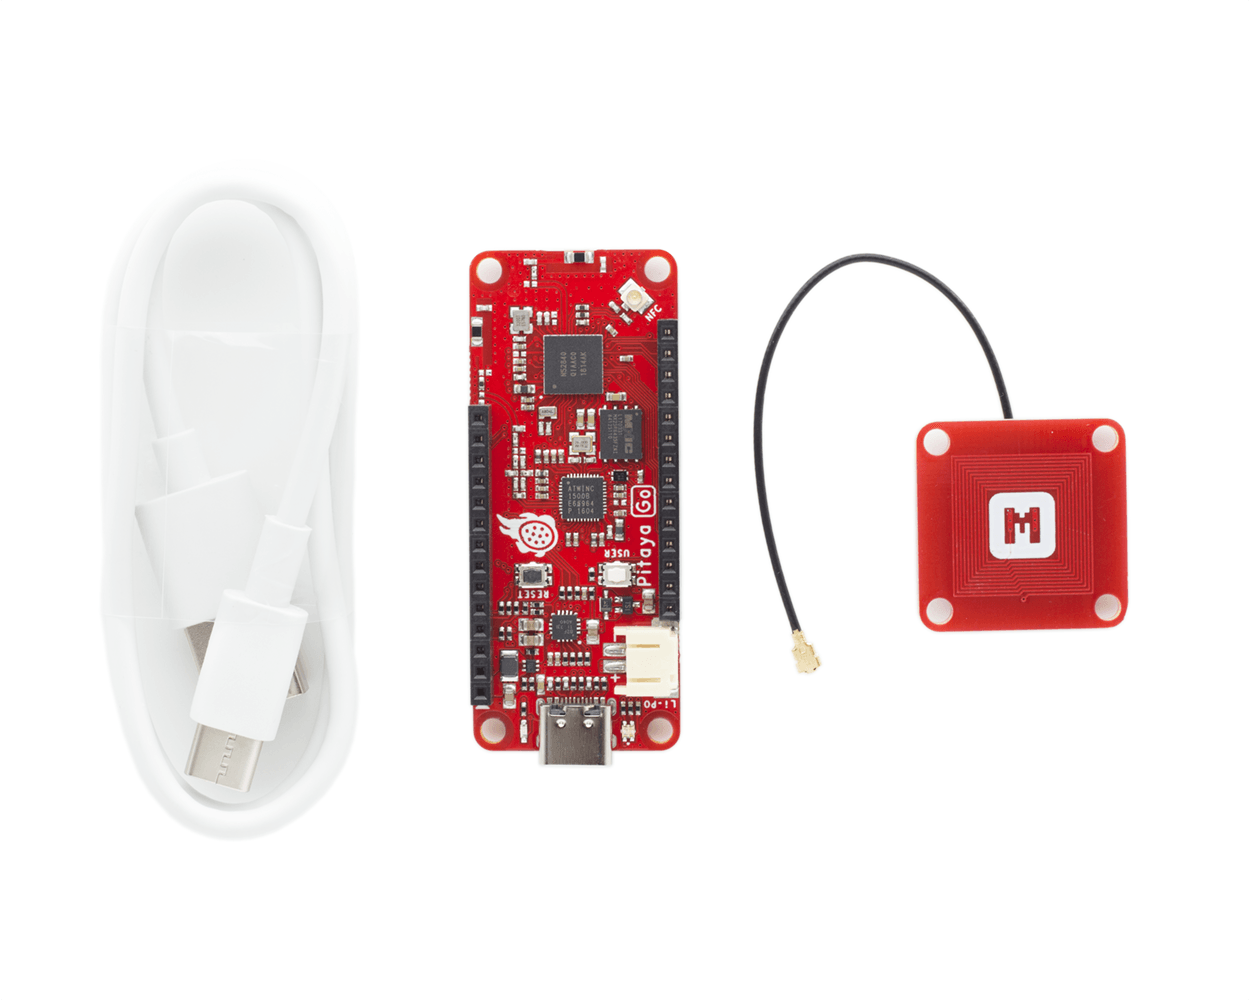 An Open-Source IoT Development Platform with Multiprotocol Wireless Connectivity